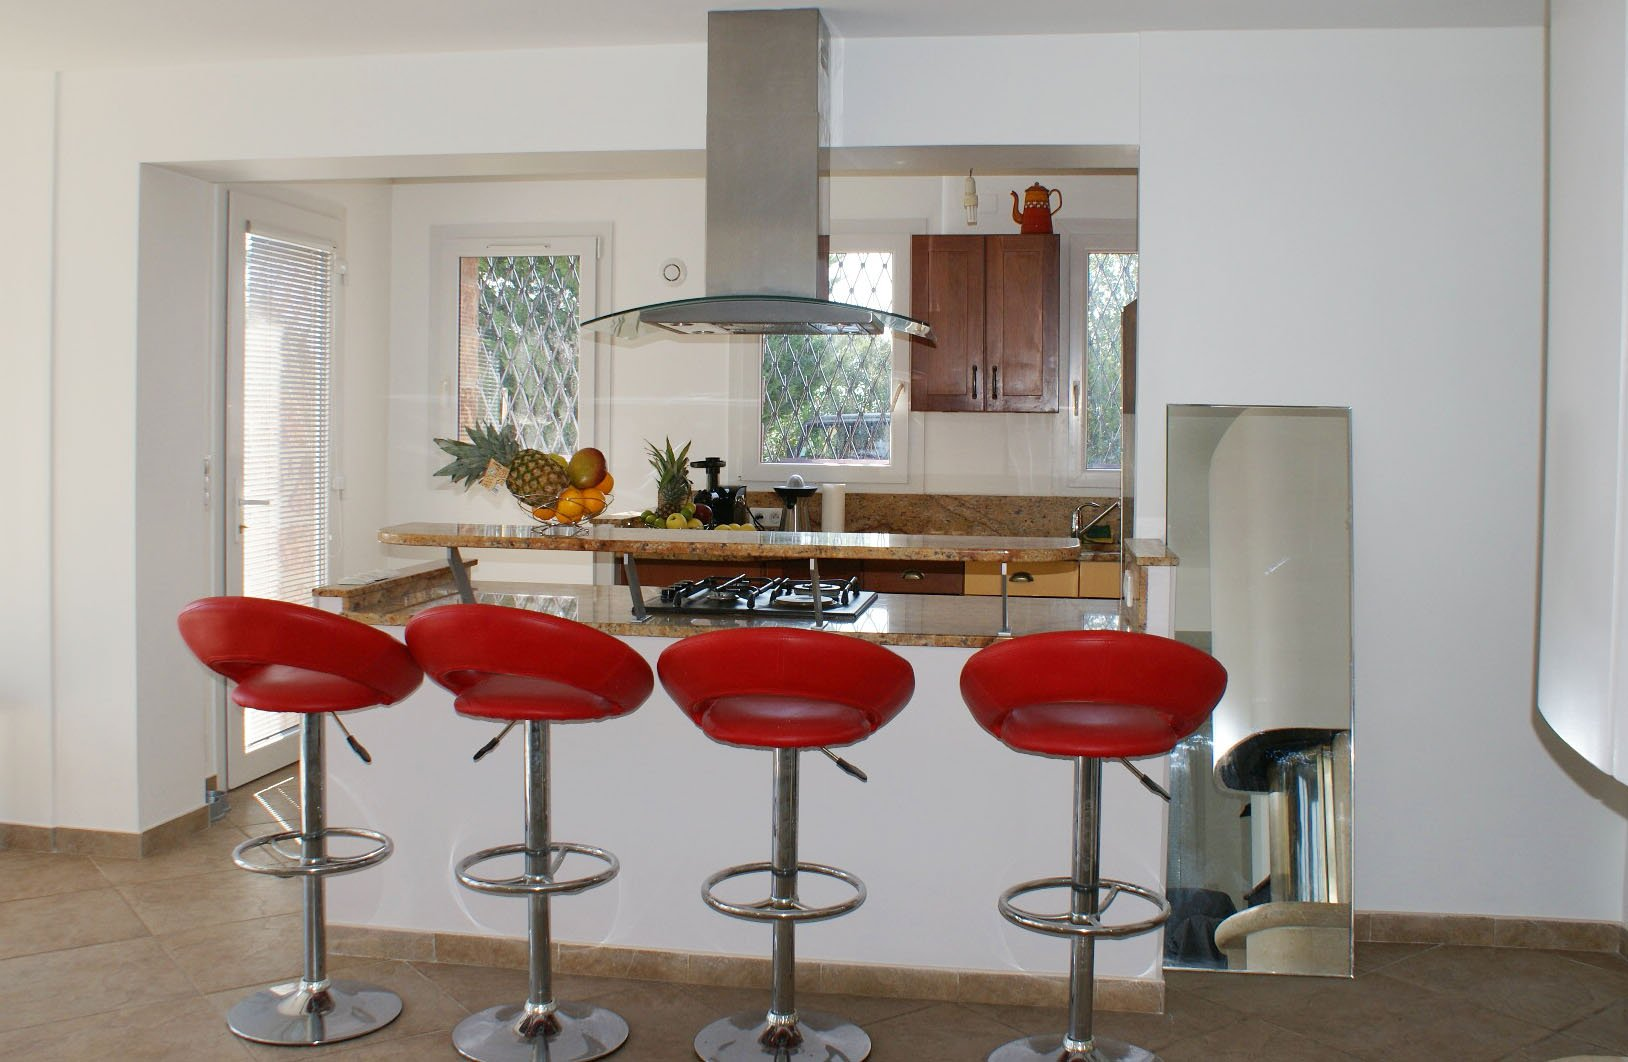 Kitchen bar, stainless steel